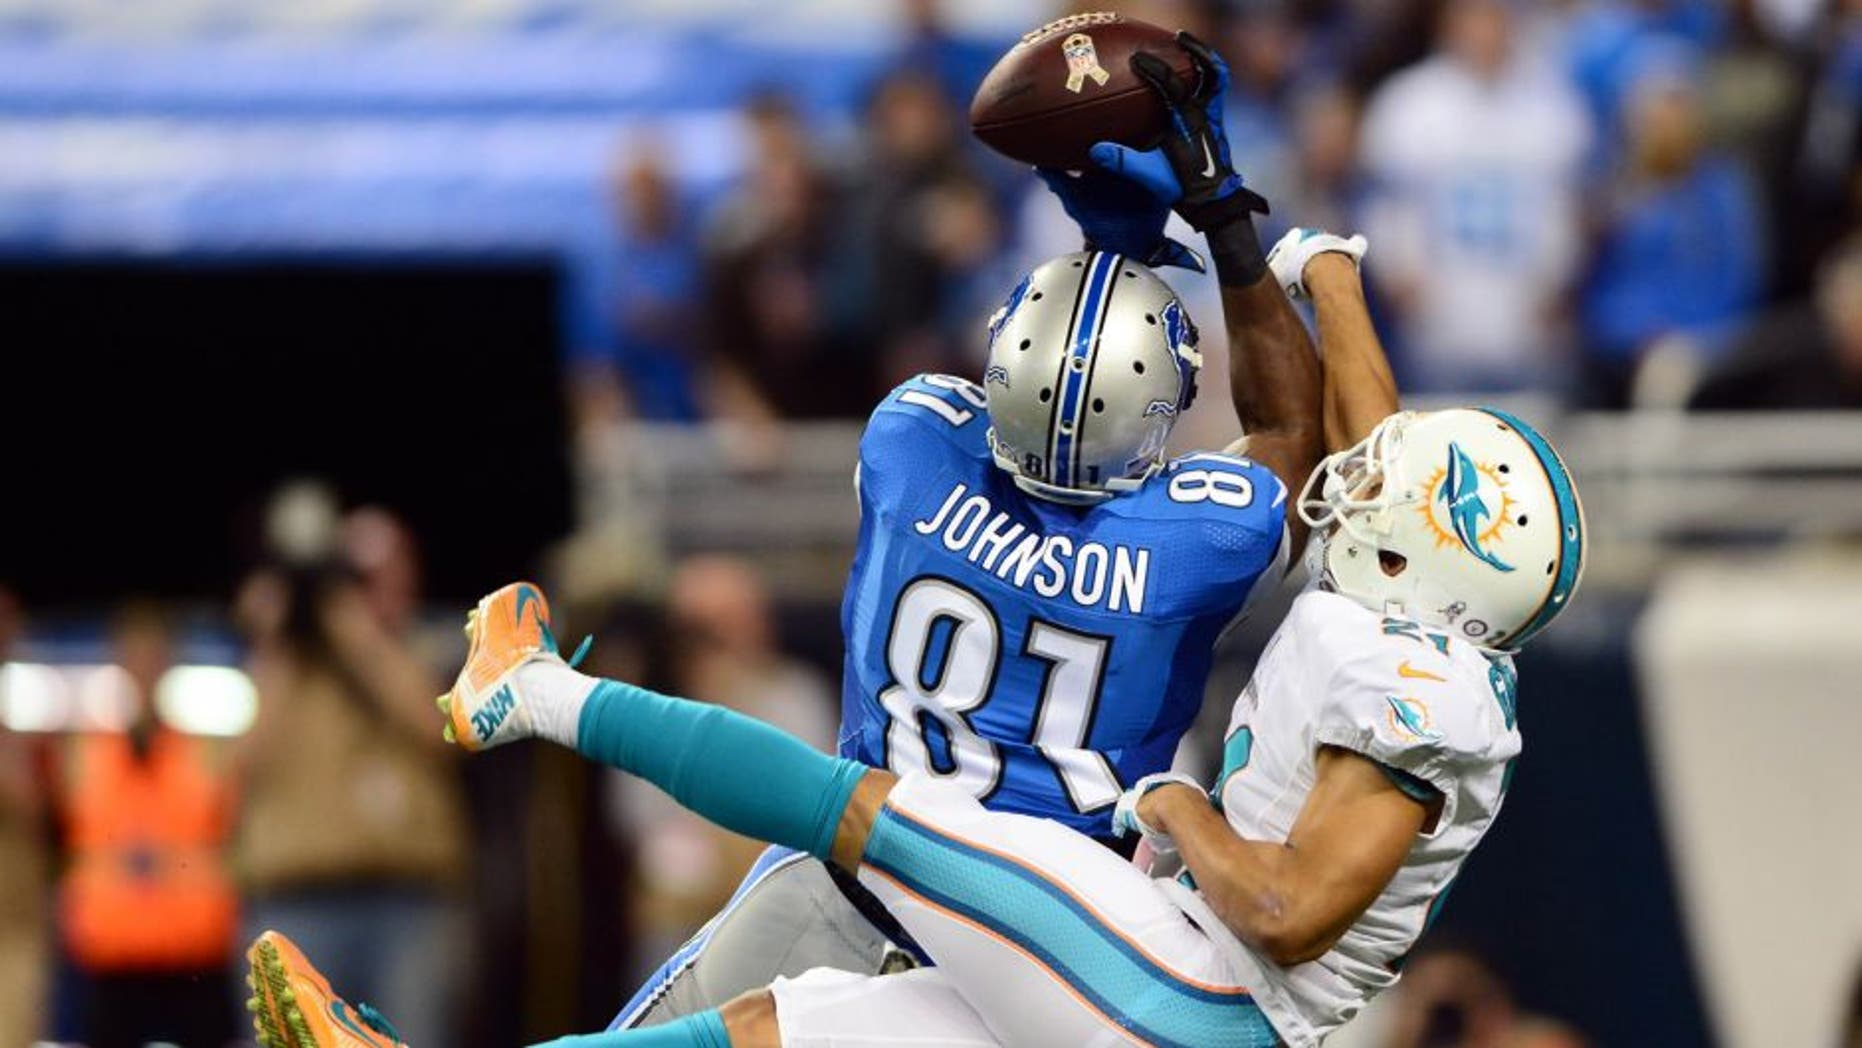 Nov 9, 2014; Detroit, MI, USA; Detroit Lions wide receiver Calvin Johnson (81) catches a pass while being defended by Miami Dolphins cornerback Brent Grimes (21) for a touchdown during the first quarter at Ford Field. Mandatory Credit: Andrew Weber-USA TODAY Sports